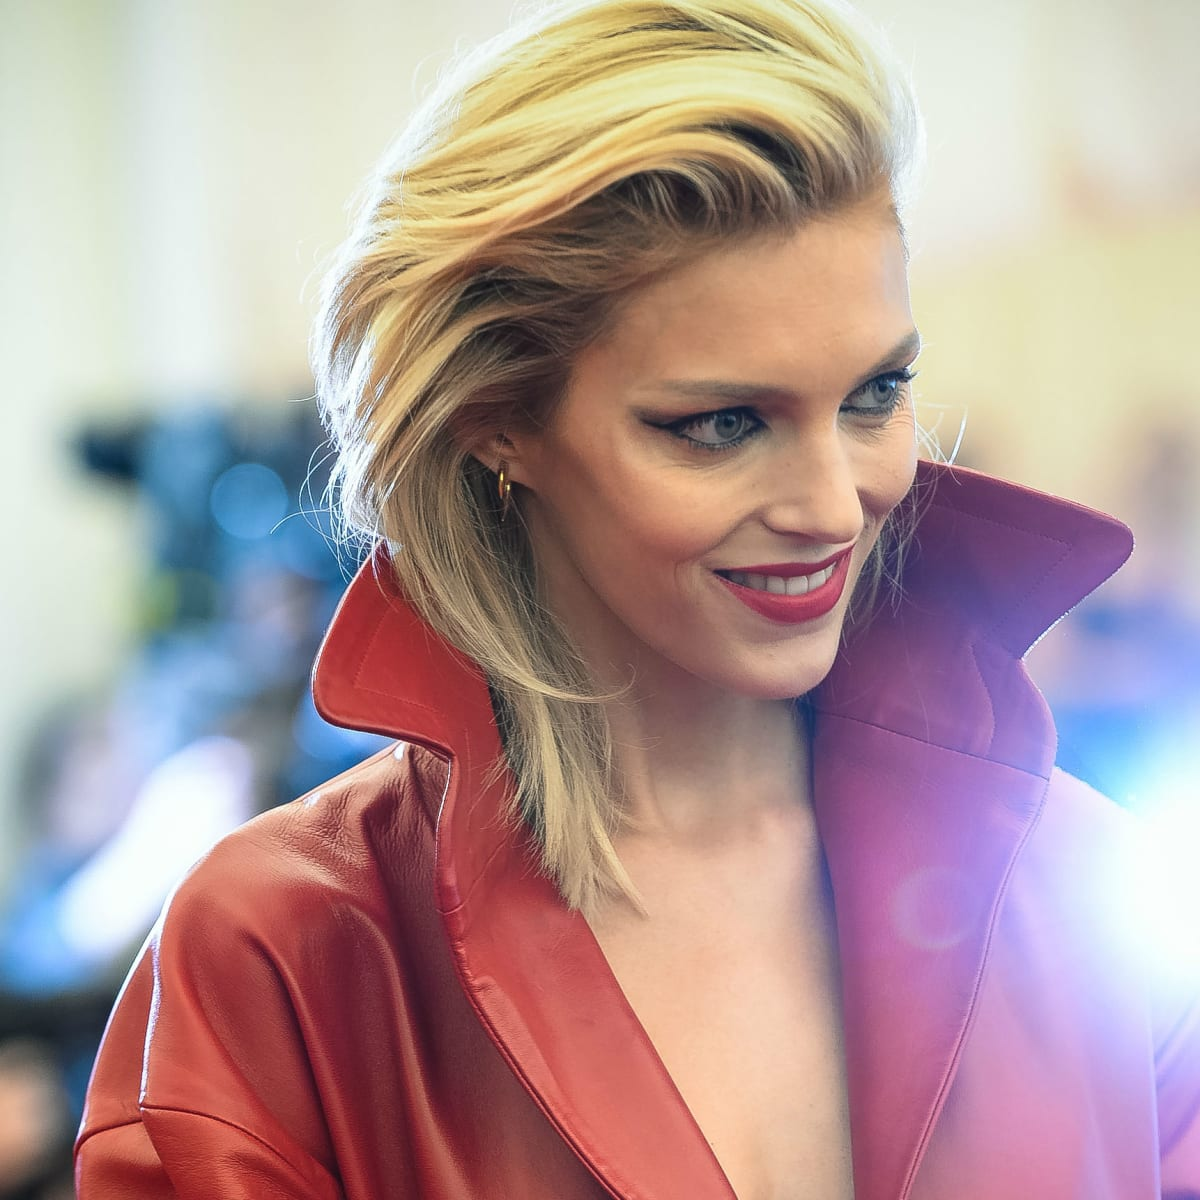 Anja Rubik Hot Blonde Hair - Anja Rubik Hot Blonde Hair